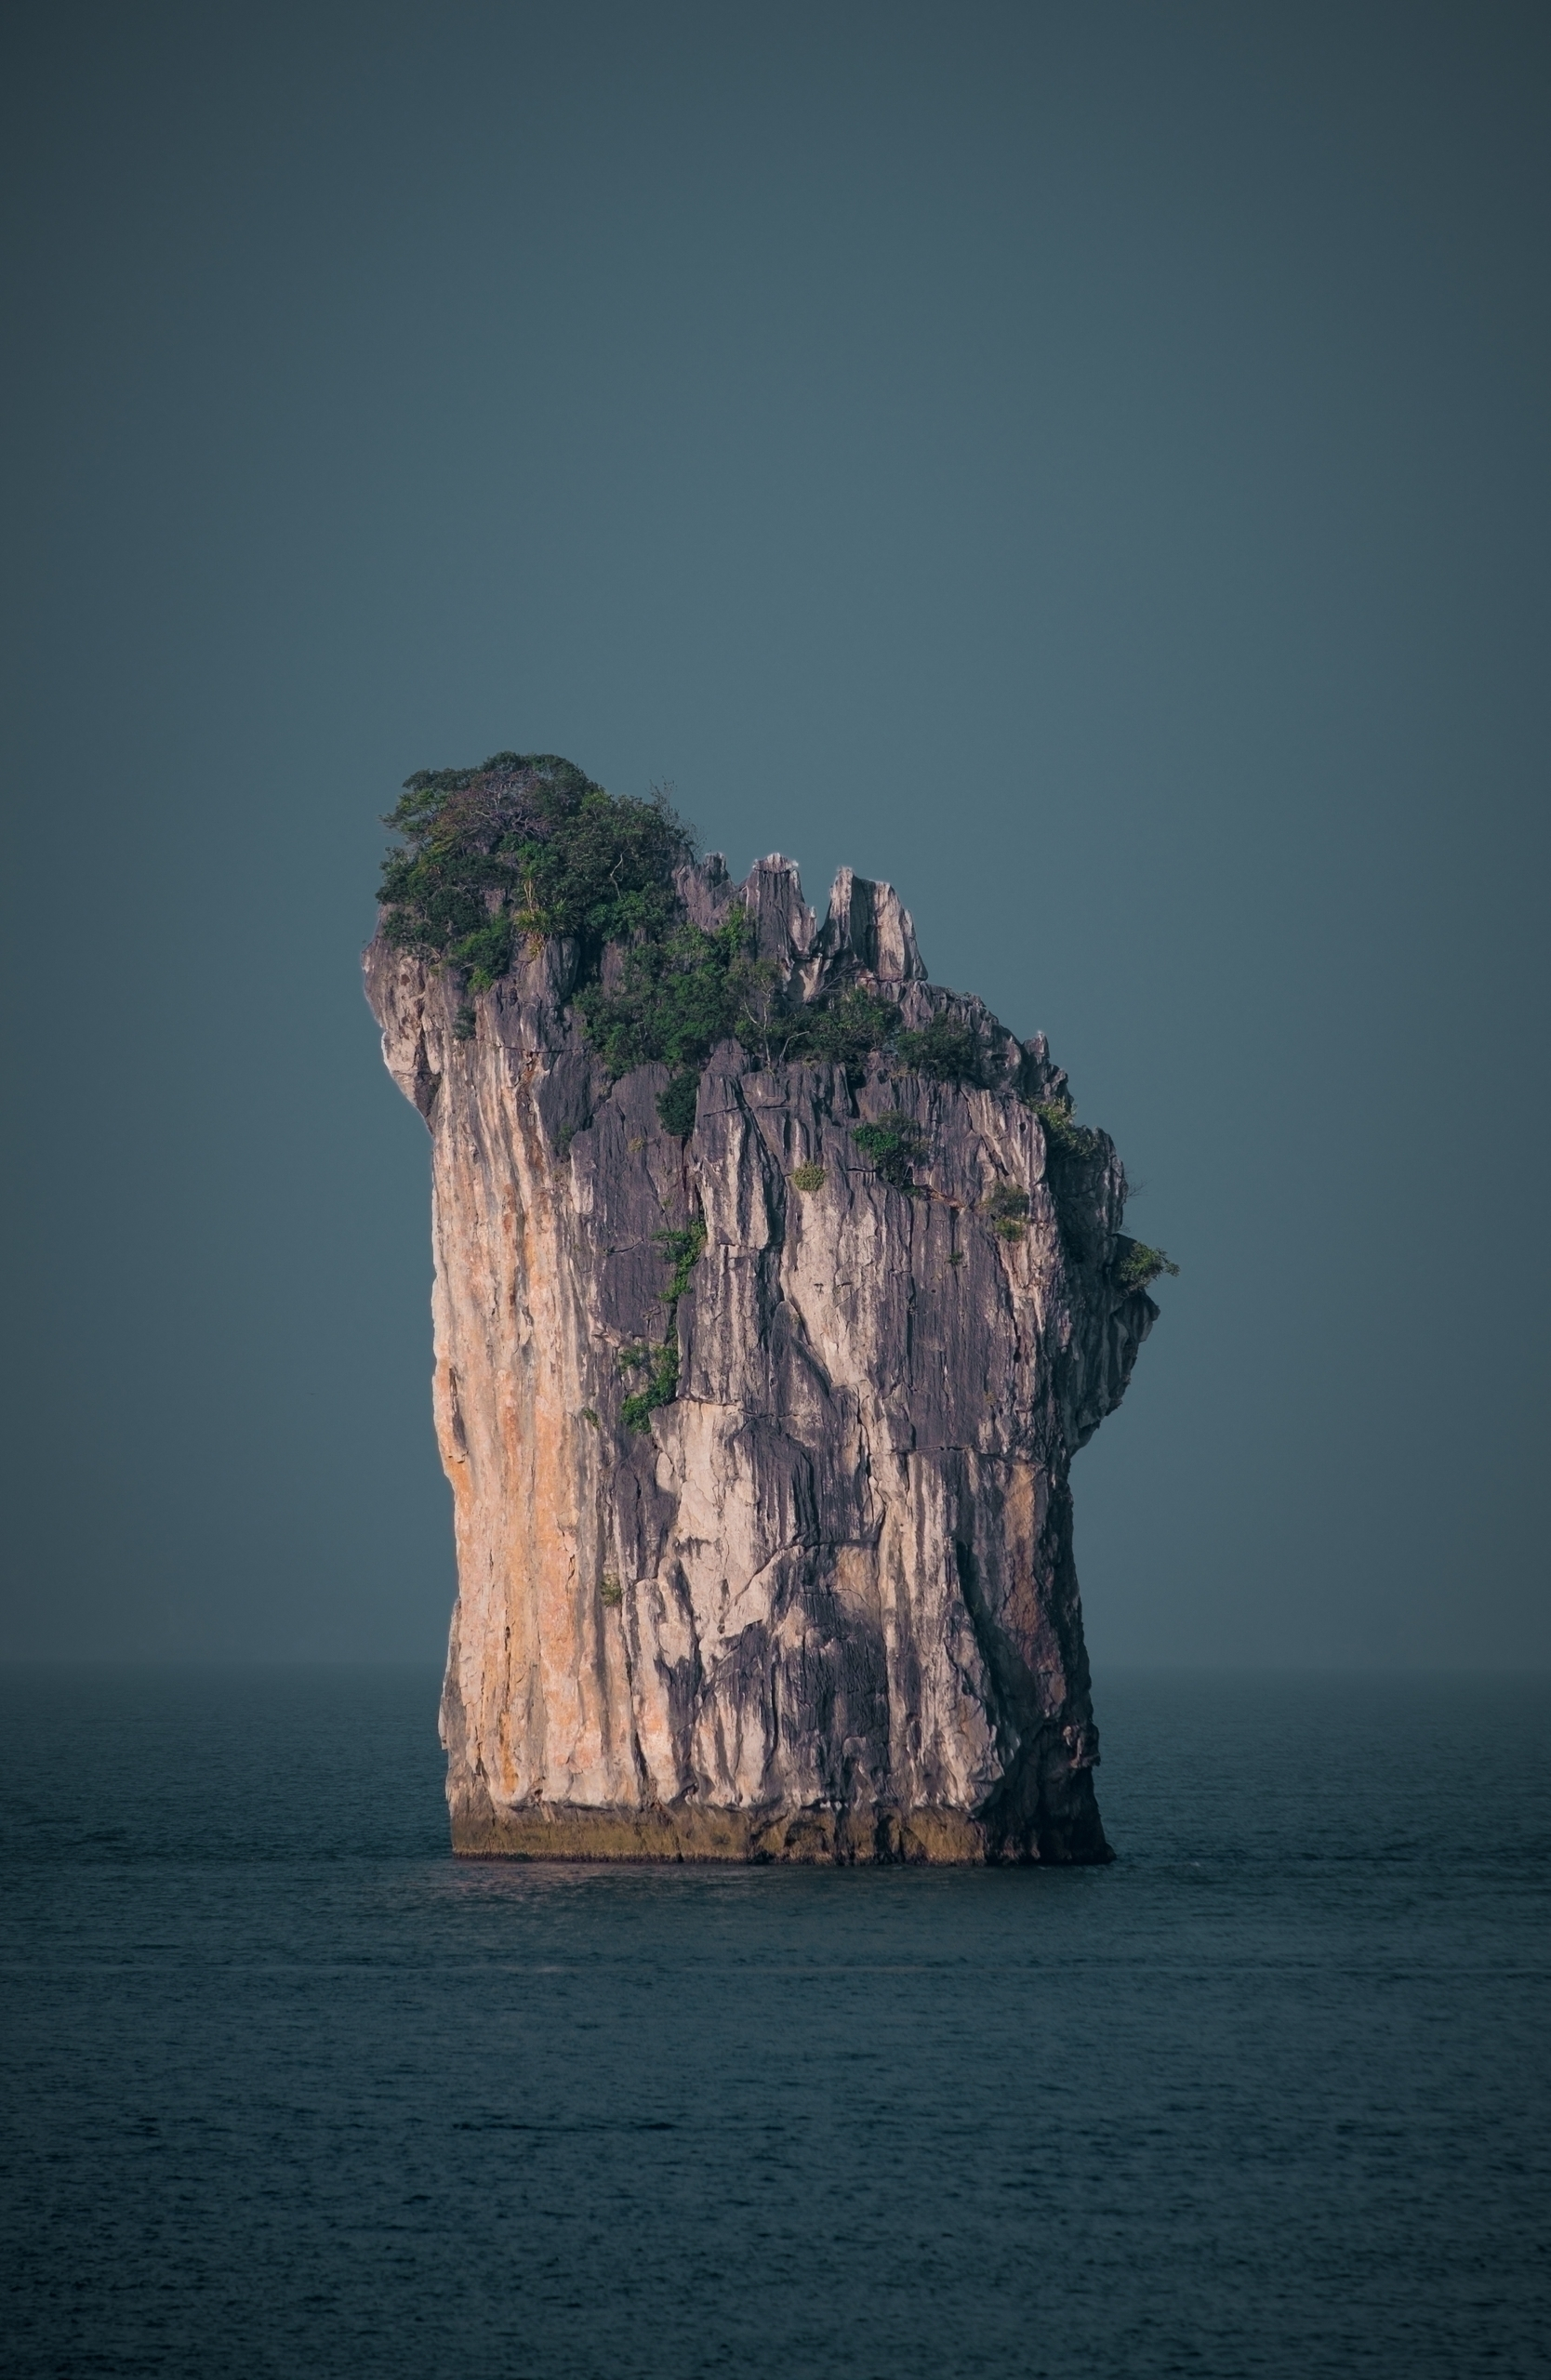 Isolated - vietnam, baitulongbay - ilirtahiri | ello